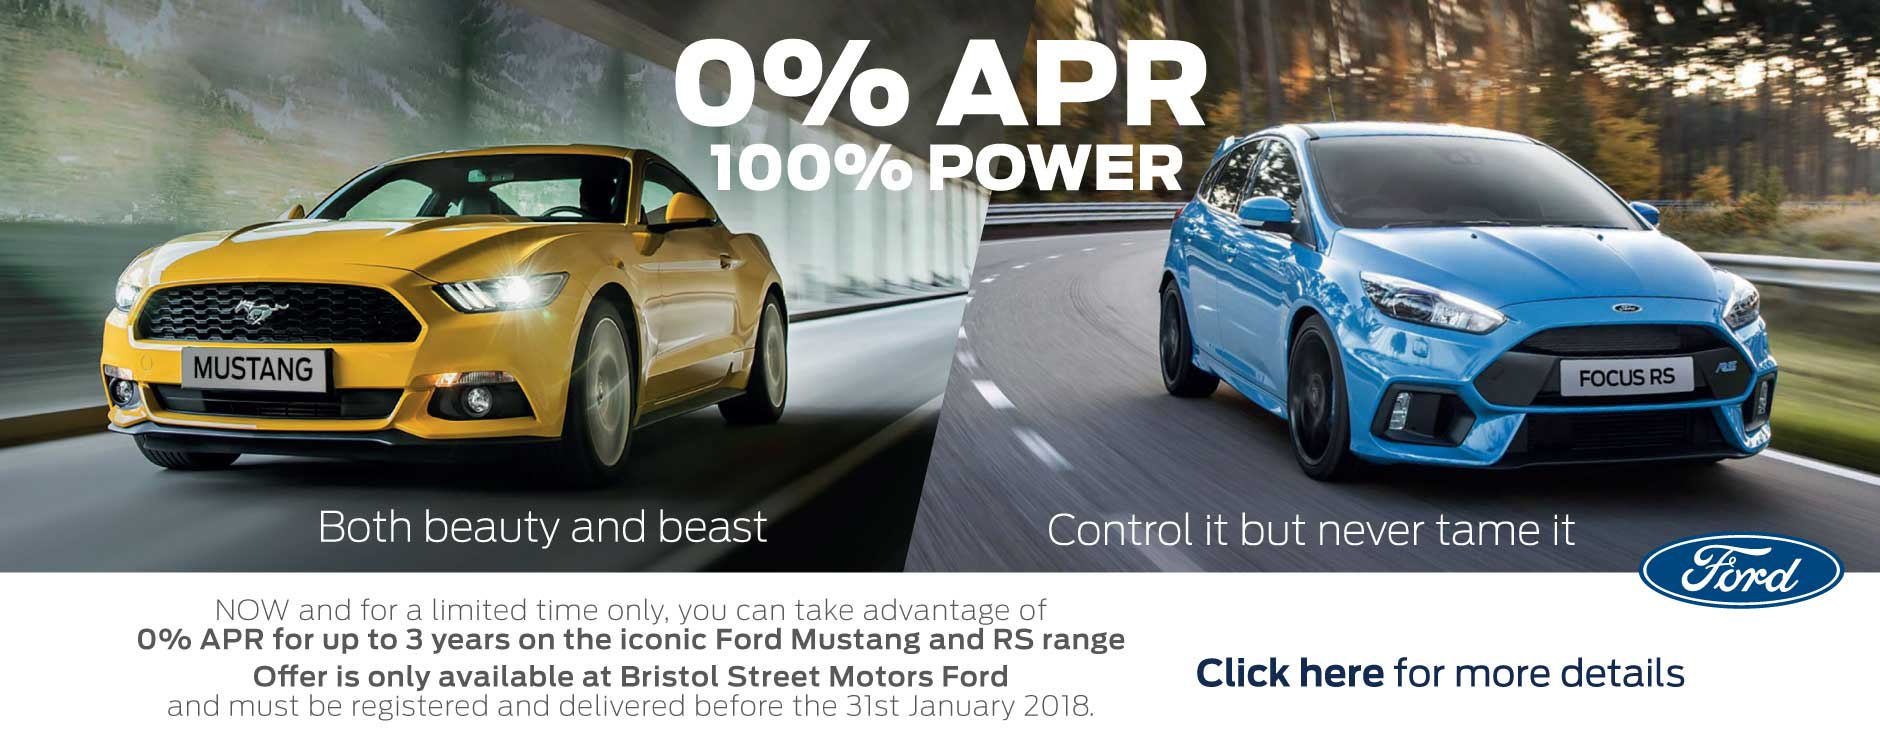 Ford Mustang and RS 0% APR Event